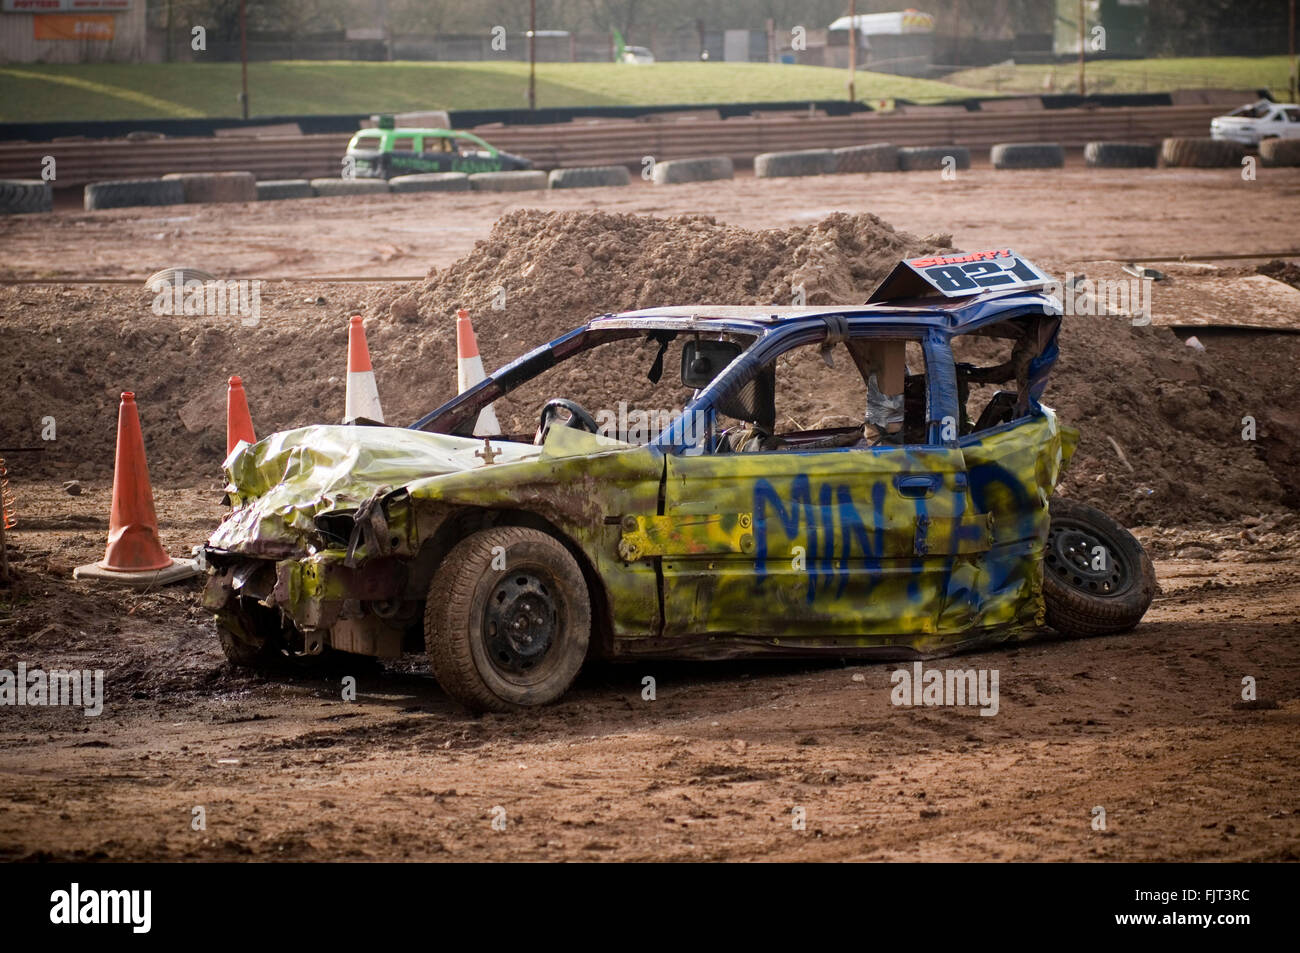 stock photo smashed up old car at demo derby destruction demolition derbies stock cars race races racing dent dents dented wreck wrecked cra